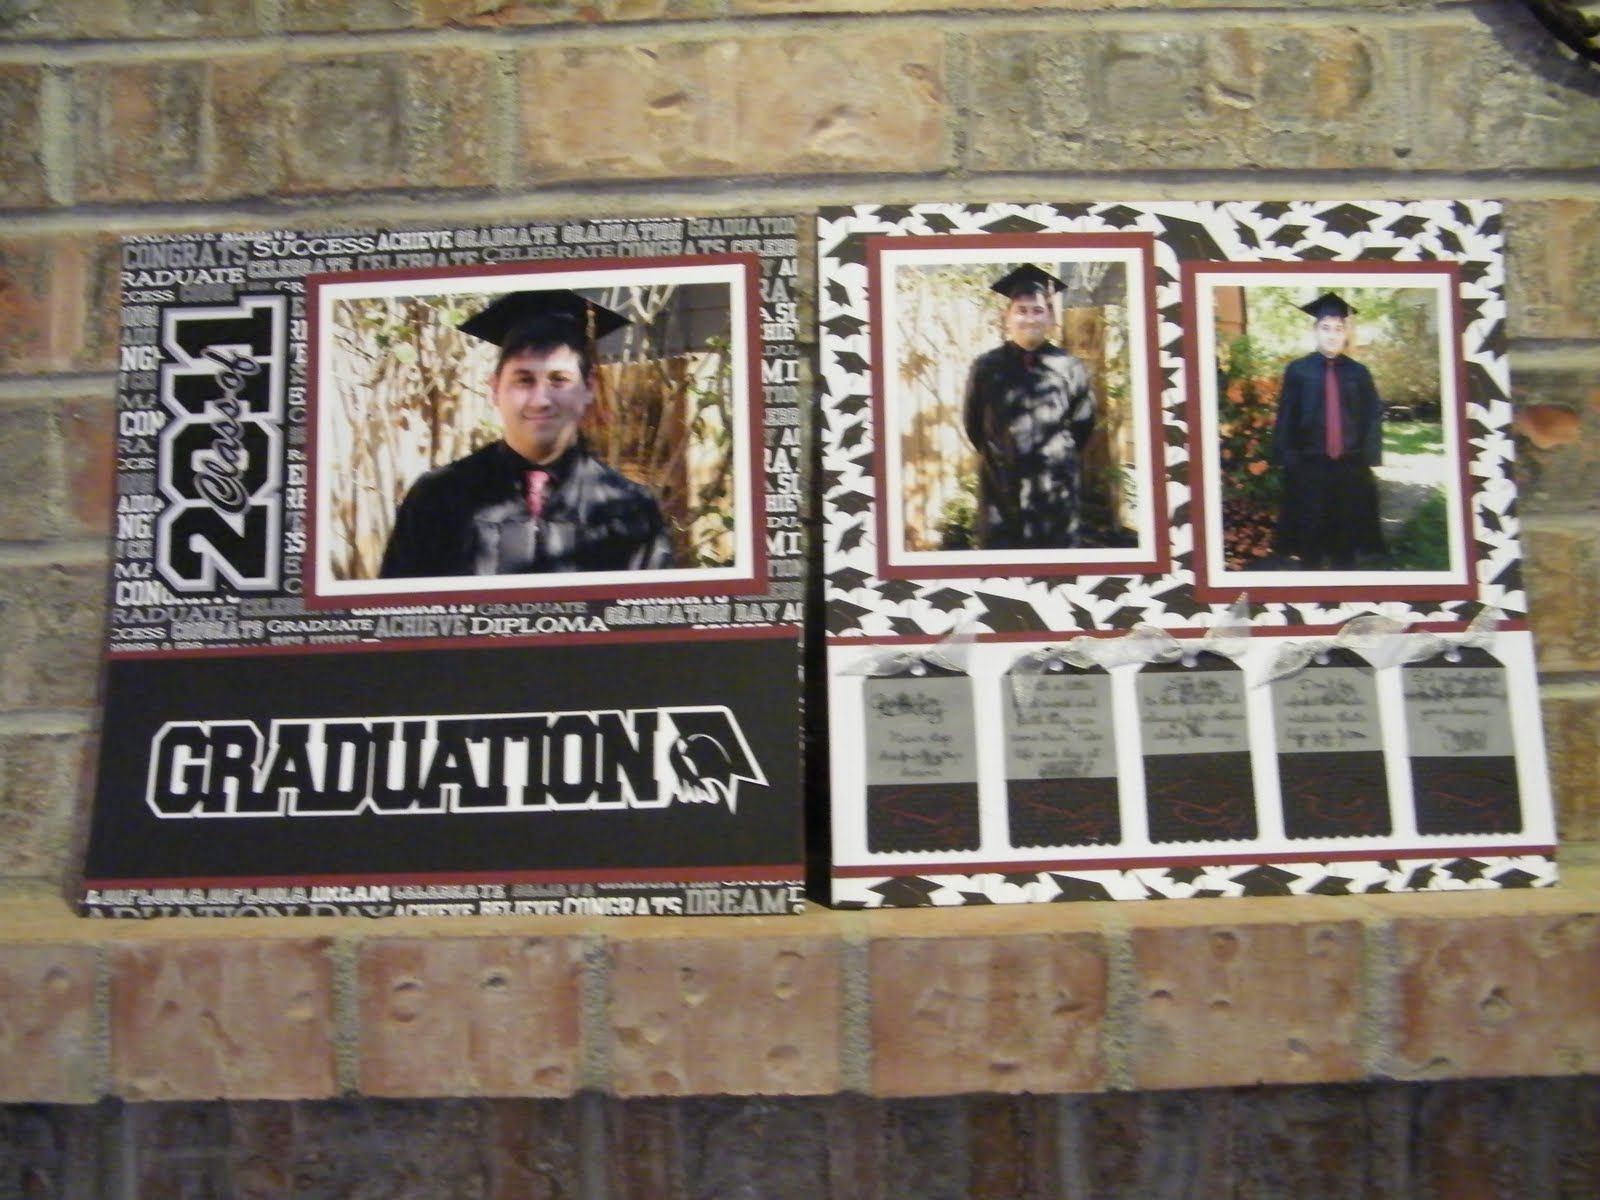 Graduation scrapbook ideas pinterest - Graduation Scrapbook Page Ideas And Then I Finished The Album With Some